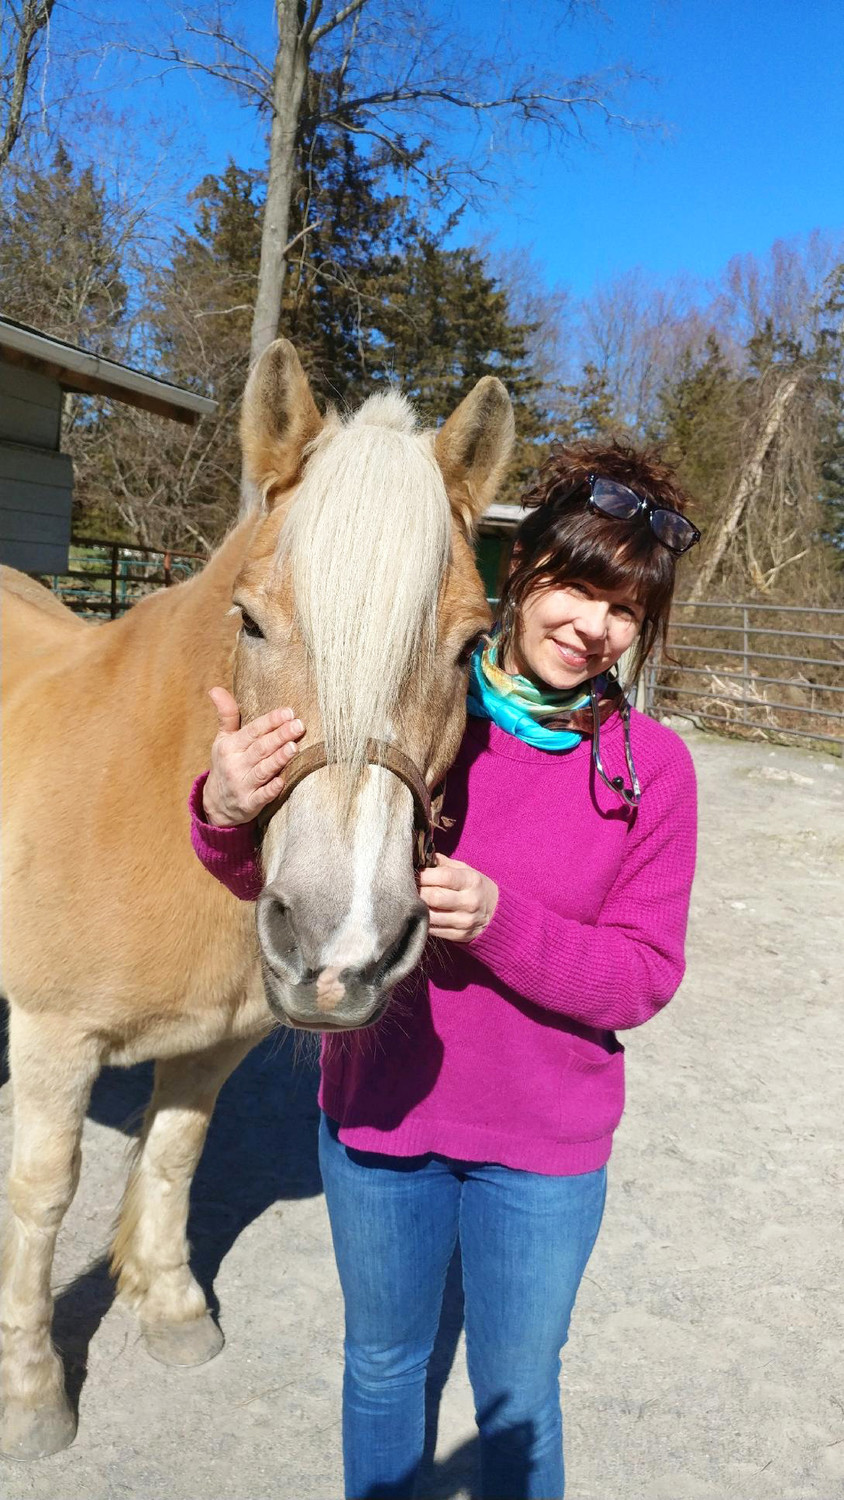 Susan Fiske's physical therapy veterinary practice also involves working with horses.